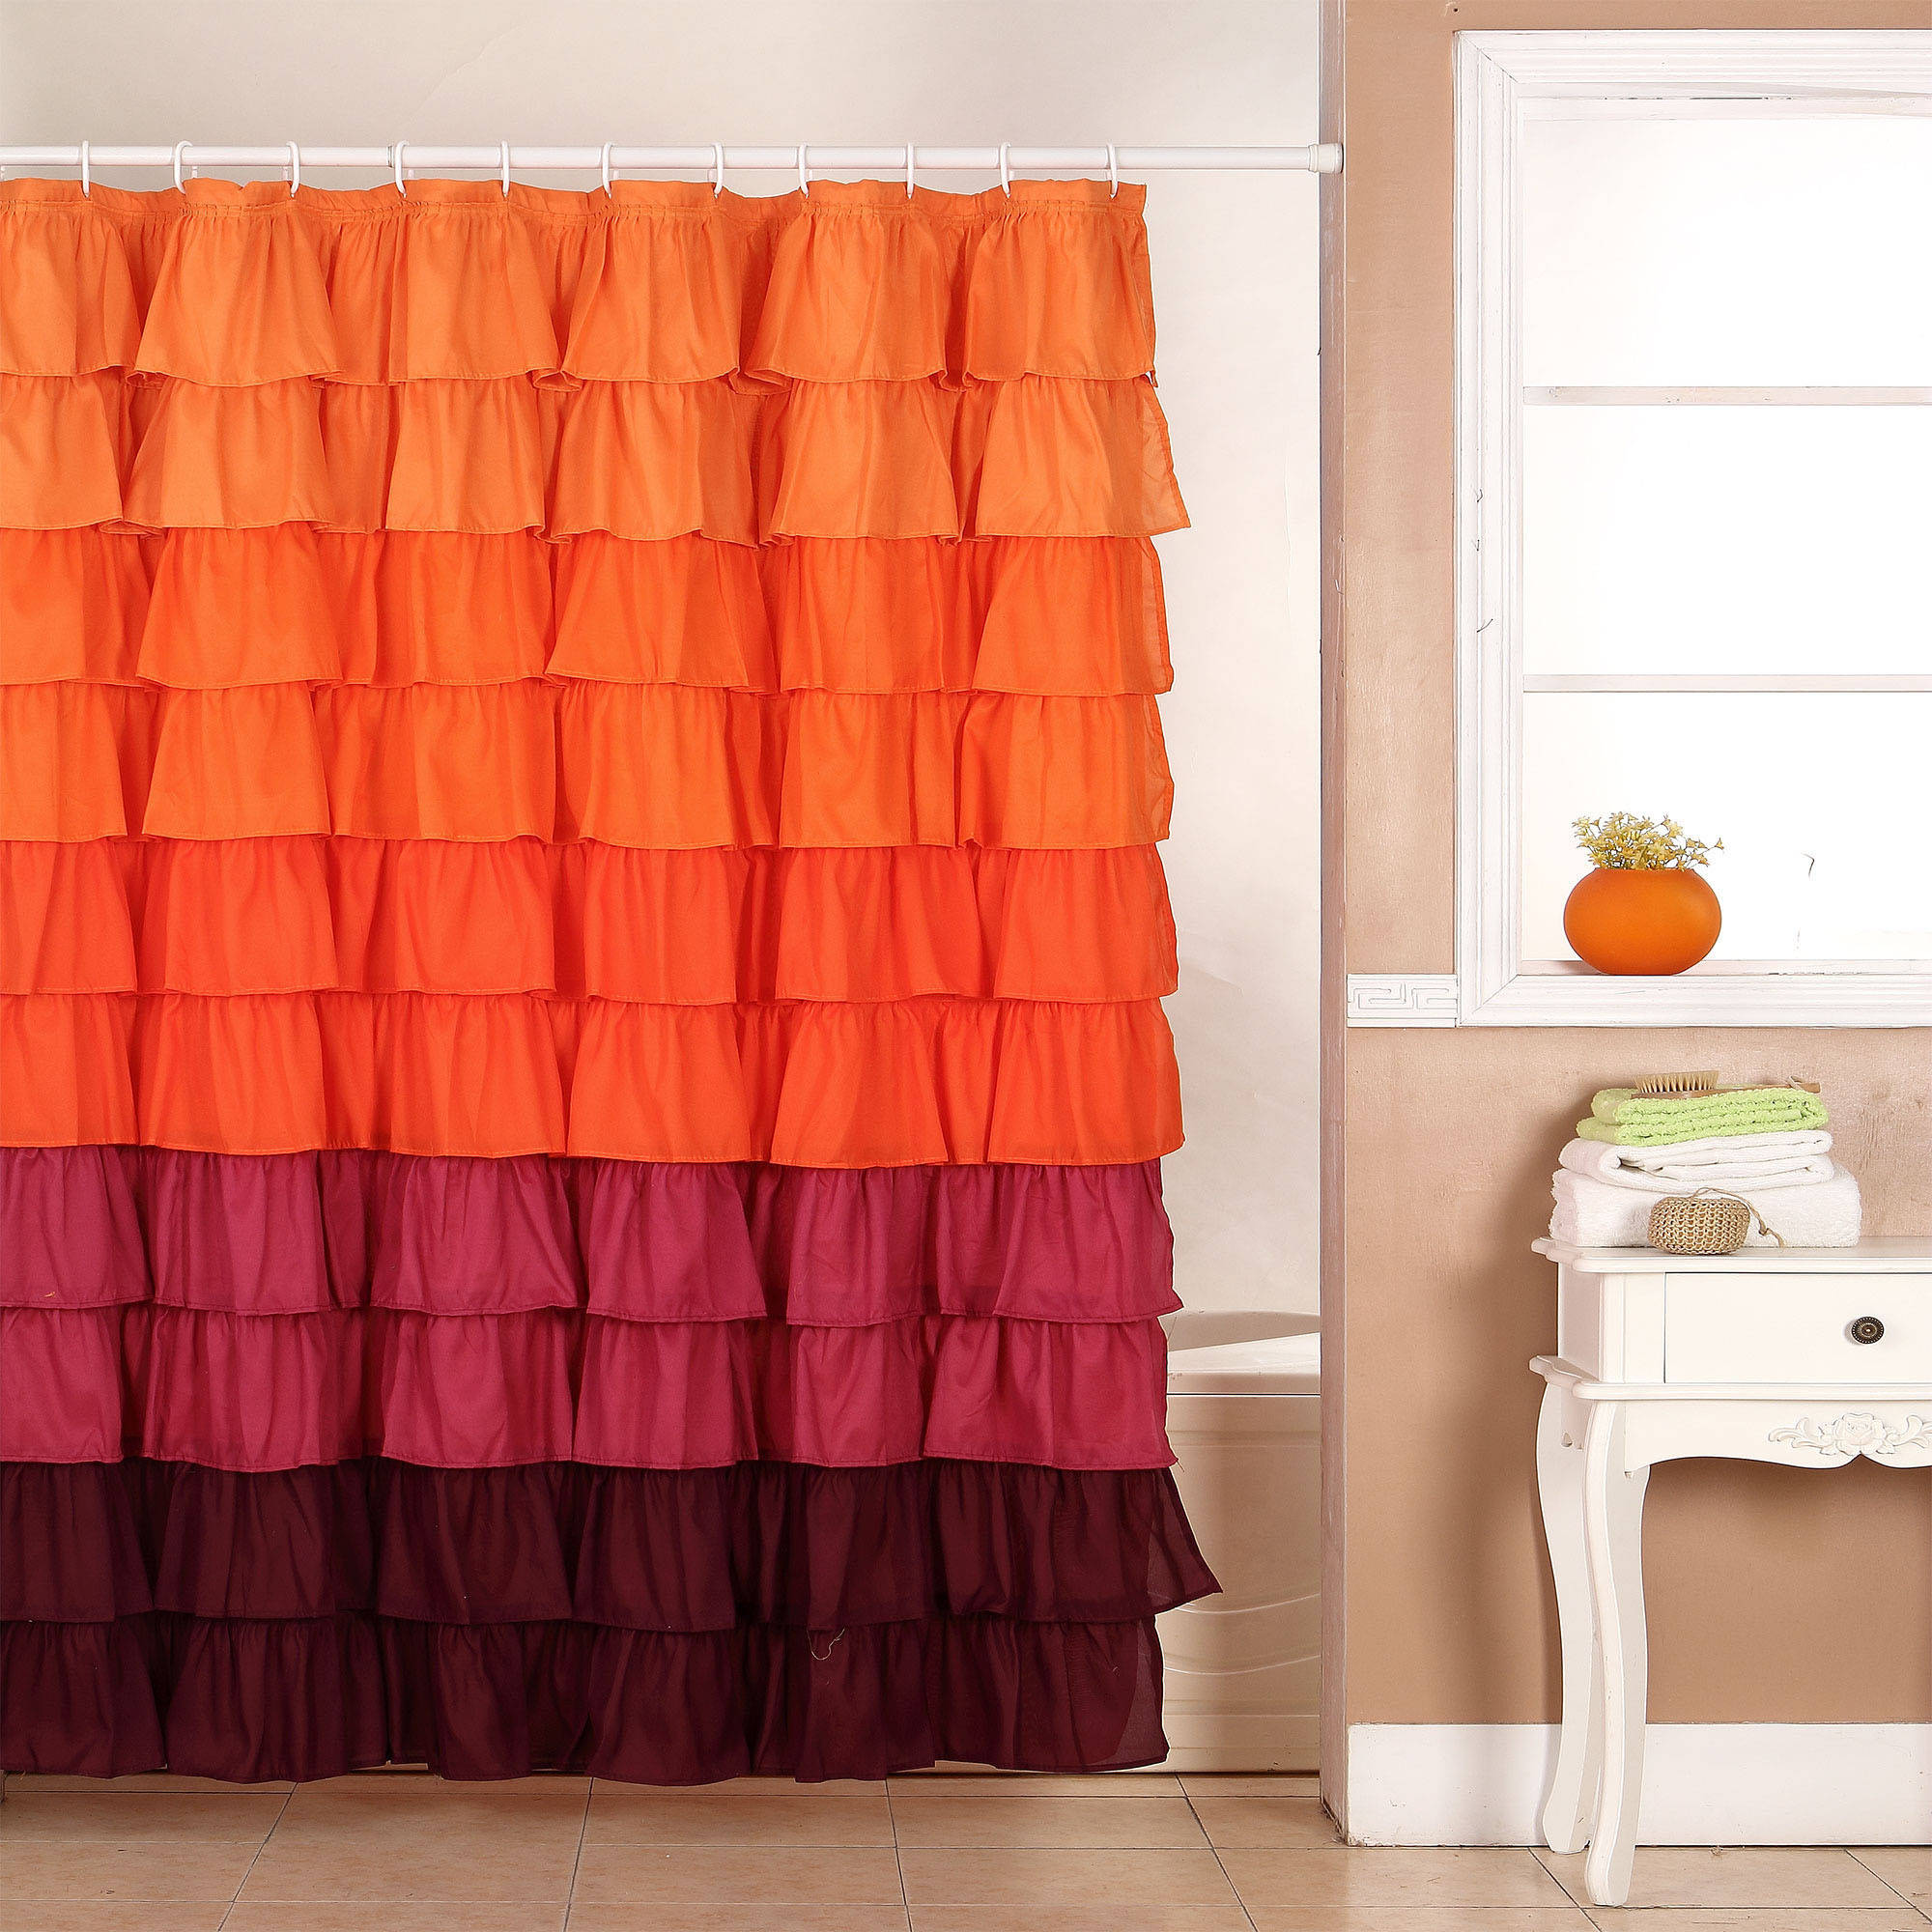 Diy ruffled shower curtain - Somerset Harvest Ruffle Home Shower Curtain With Buttonholes